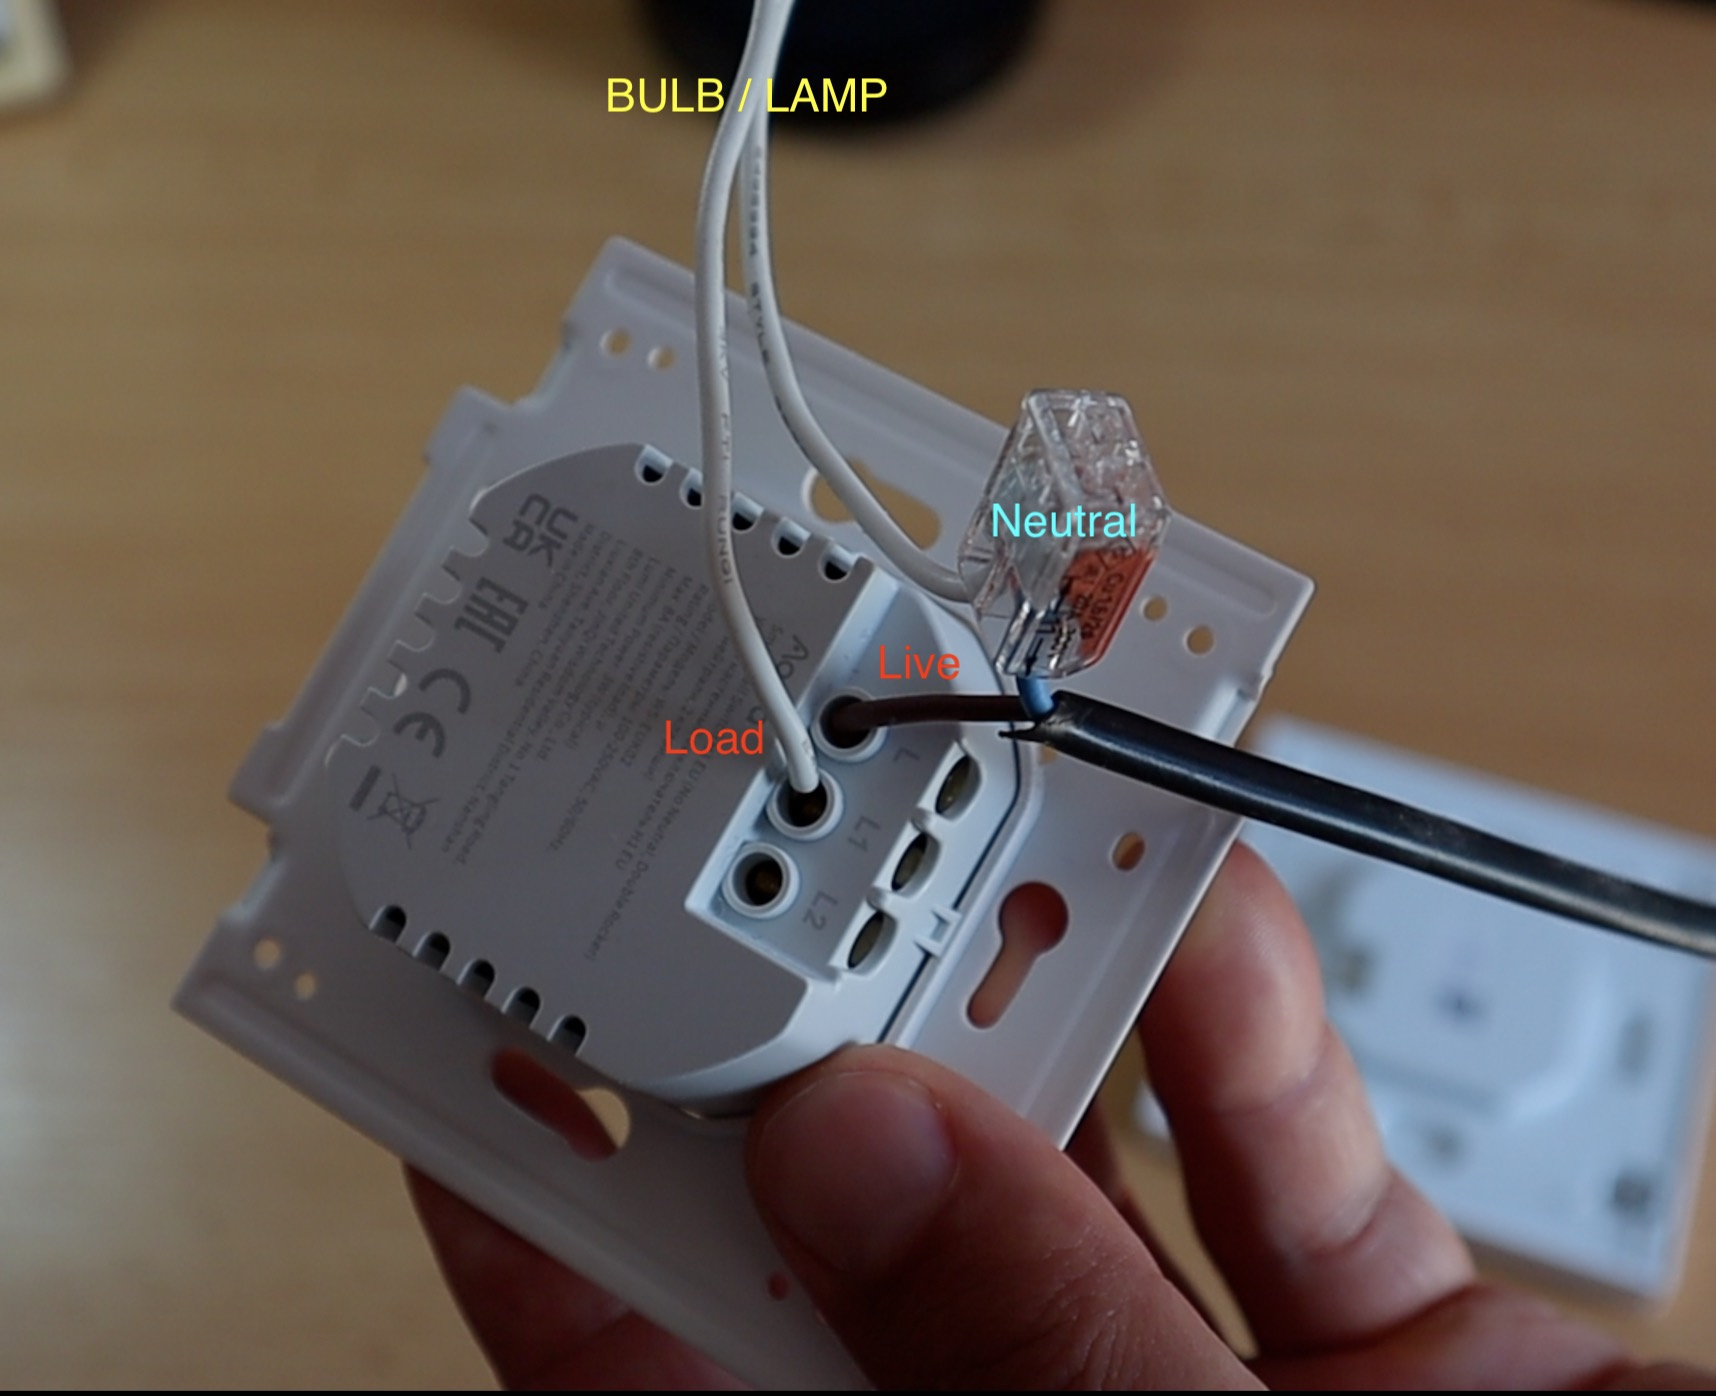 Double Rocker Smart Switch - No Neutral Wiring (only on of the Rockers are connected)